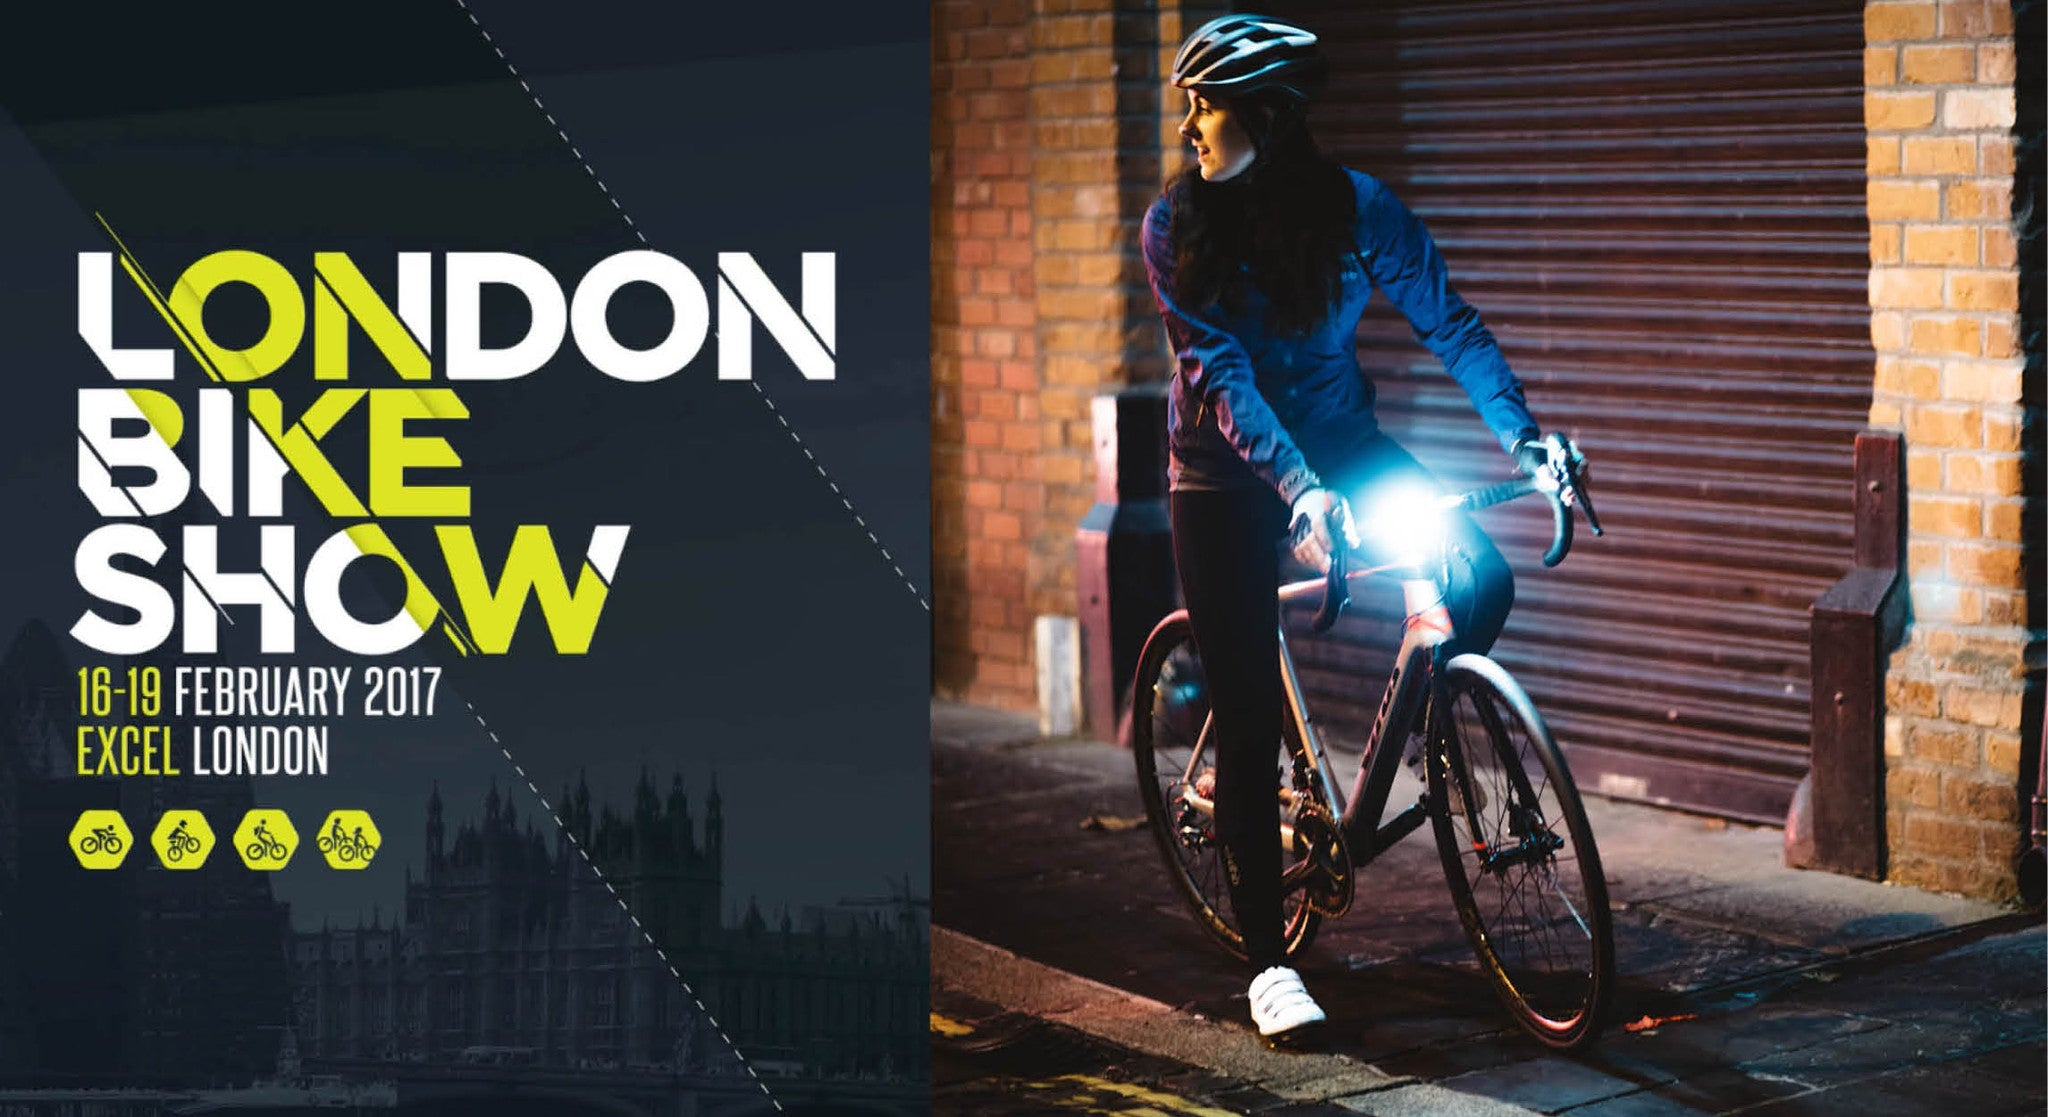 Things we're excited for at The London Bike Show